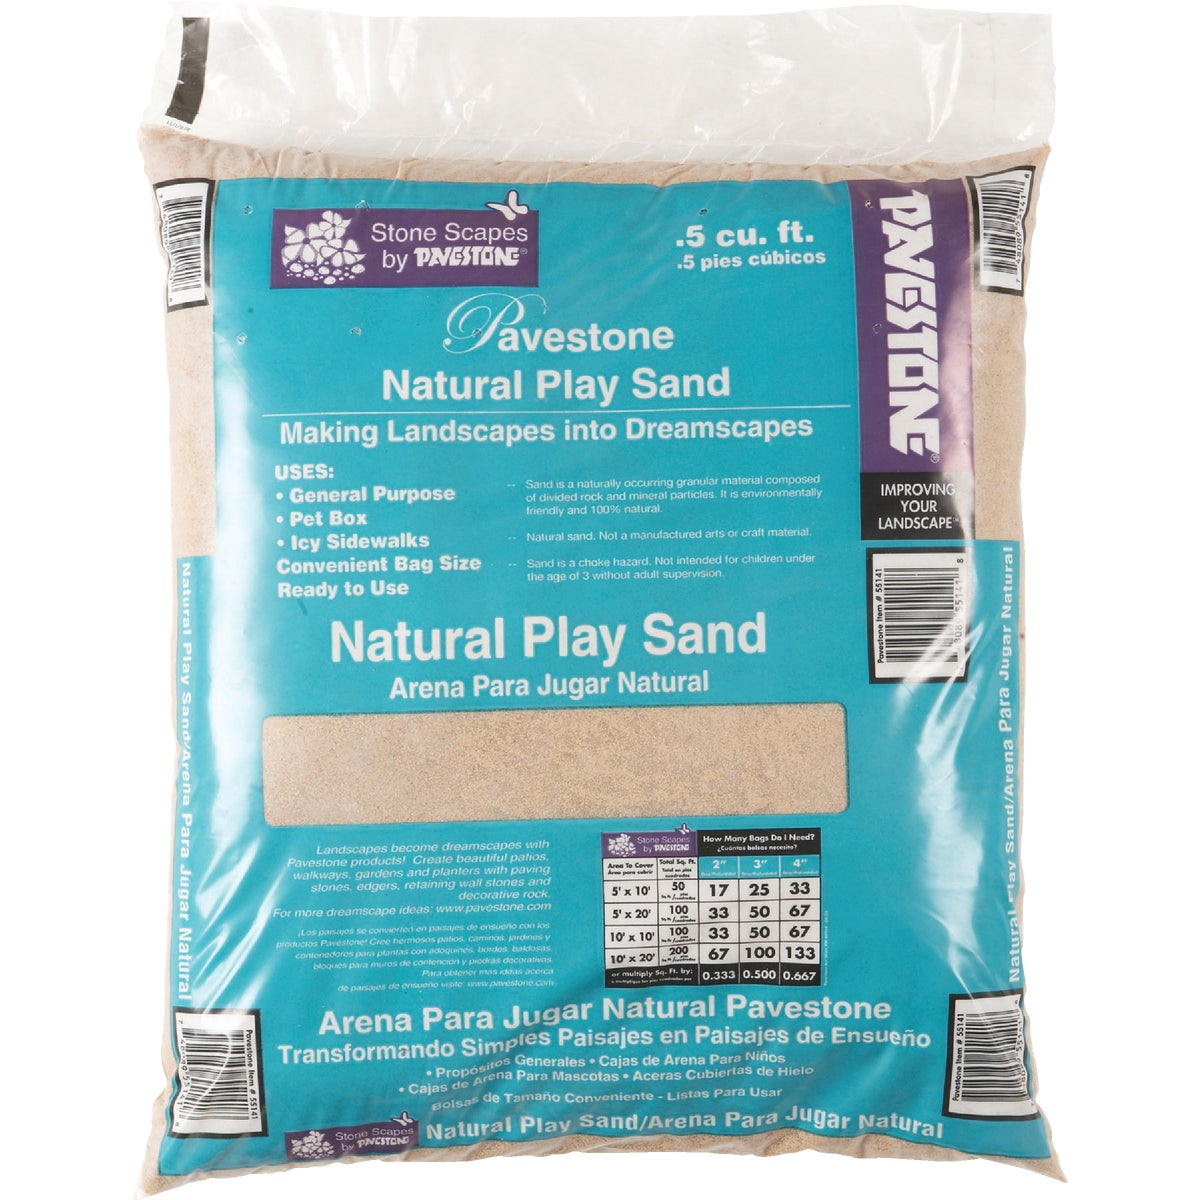 .5 CU FT PLAY SAND - 55141 by Pavestone Company Lp